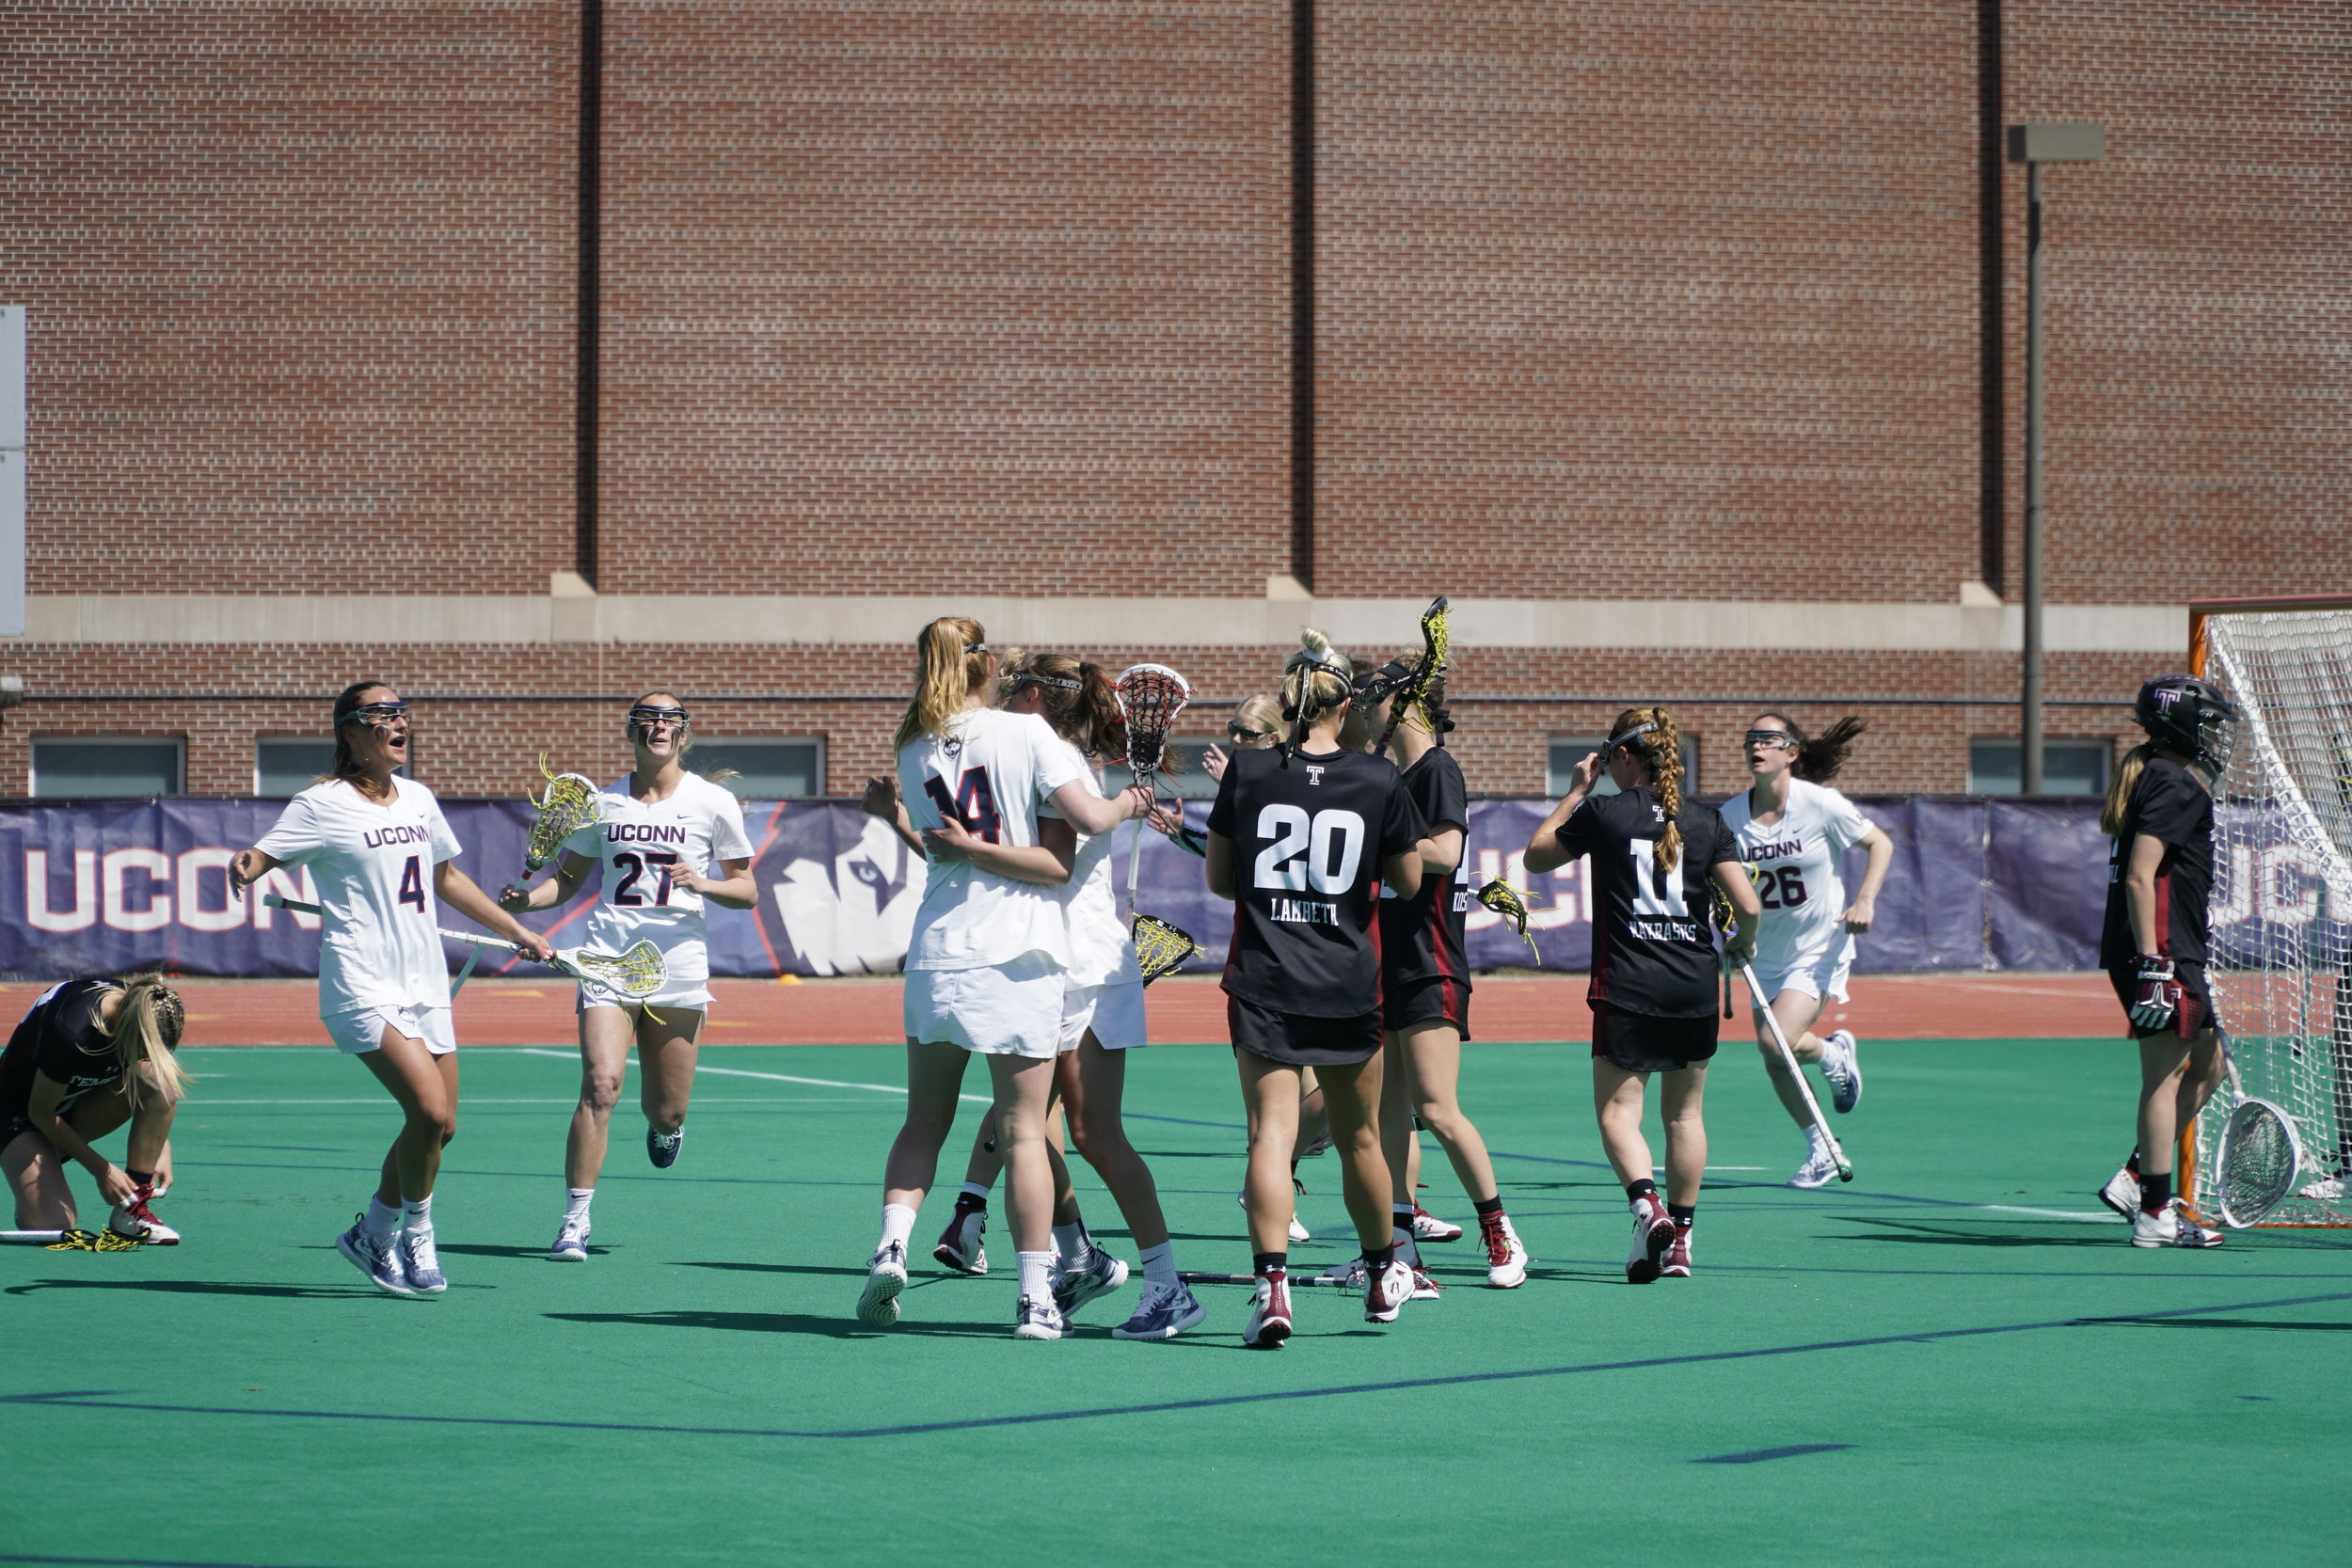 The Huskies took a tough loss against Temple on Saturday with a final score 13-17. They look to bounce back in their next home game on 4/20 against University of Florida. (Photo by Eric Wang/The Daily Campus)